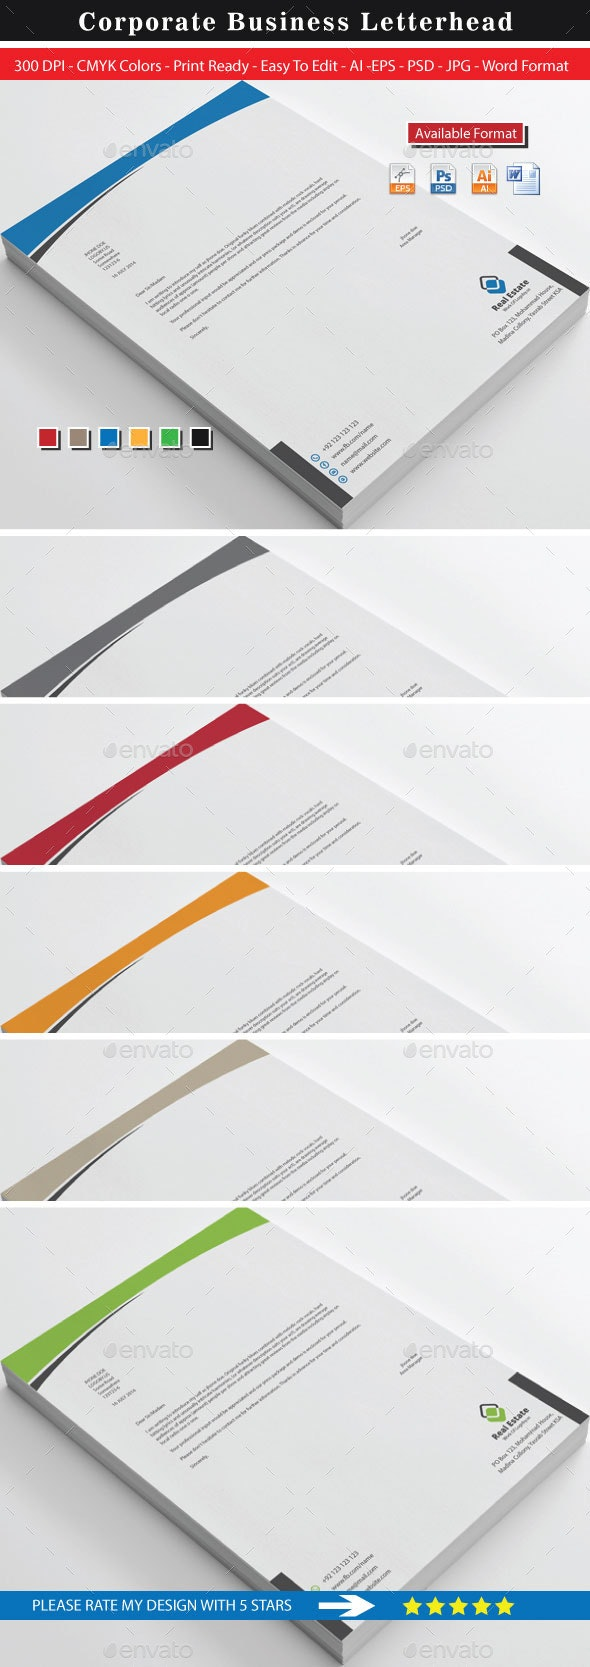 Real Estate Business Letterhead - Stationery Print Templates